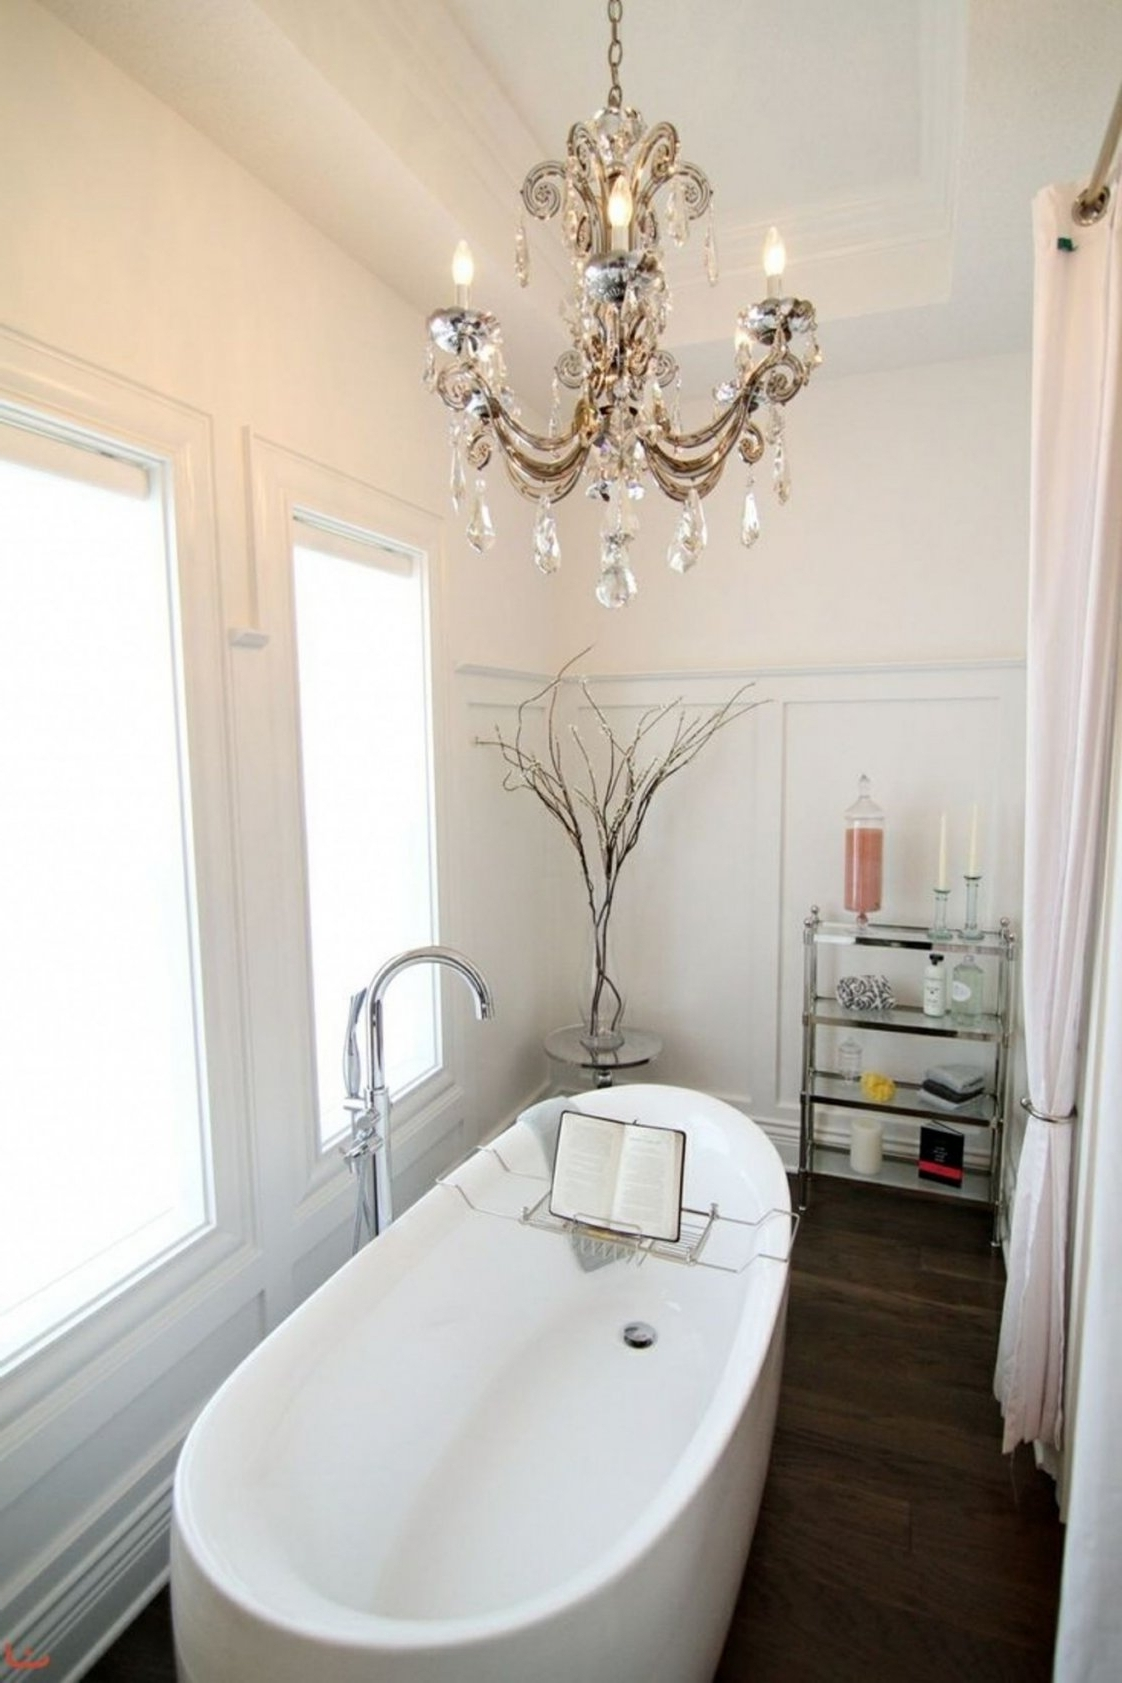 Recent Bathroom Lighting With Matching Chandeliers In Chandelier Bathroom Lighting – Aneilve (View 13 of 15)